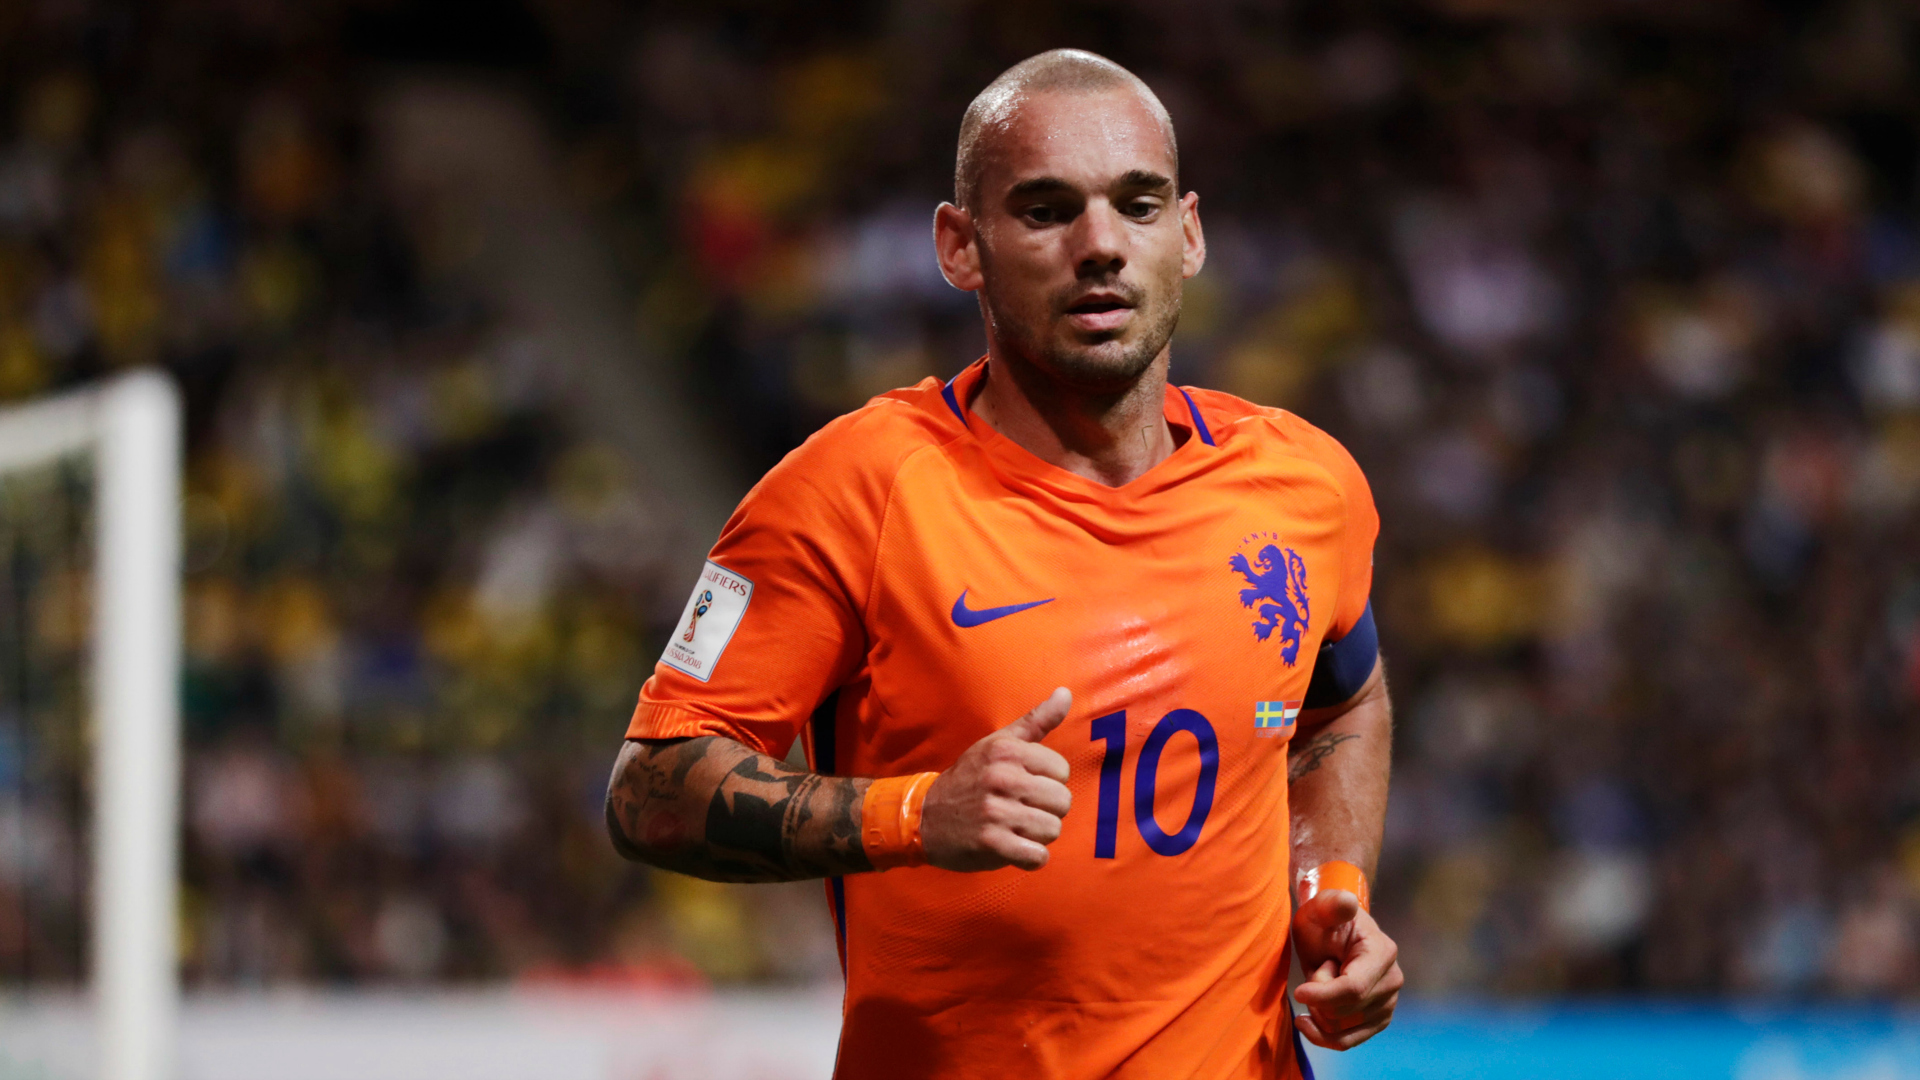 Sneijder: I have had to make sacrifices for Netherlands record